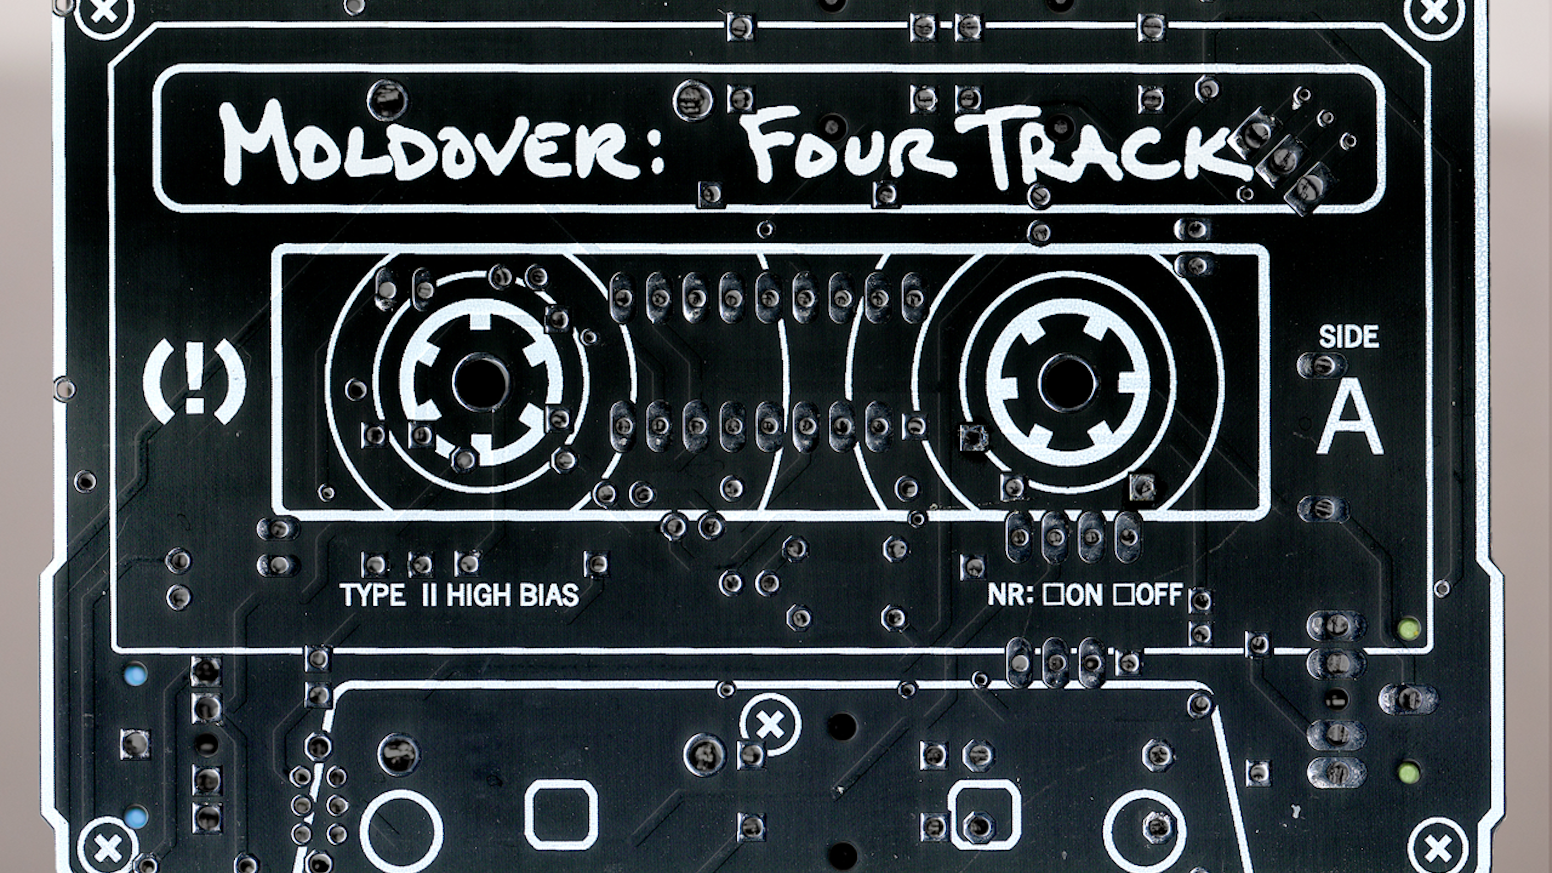 Moldover Waaaaay More Than An Album Four Track By There Are Fancier Designs Available But The Above Circuits Musician Artist And Inventor Presents A New Original Packaged In Playable